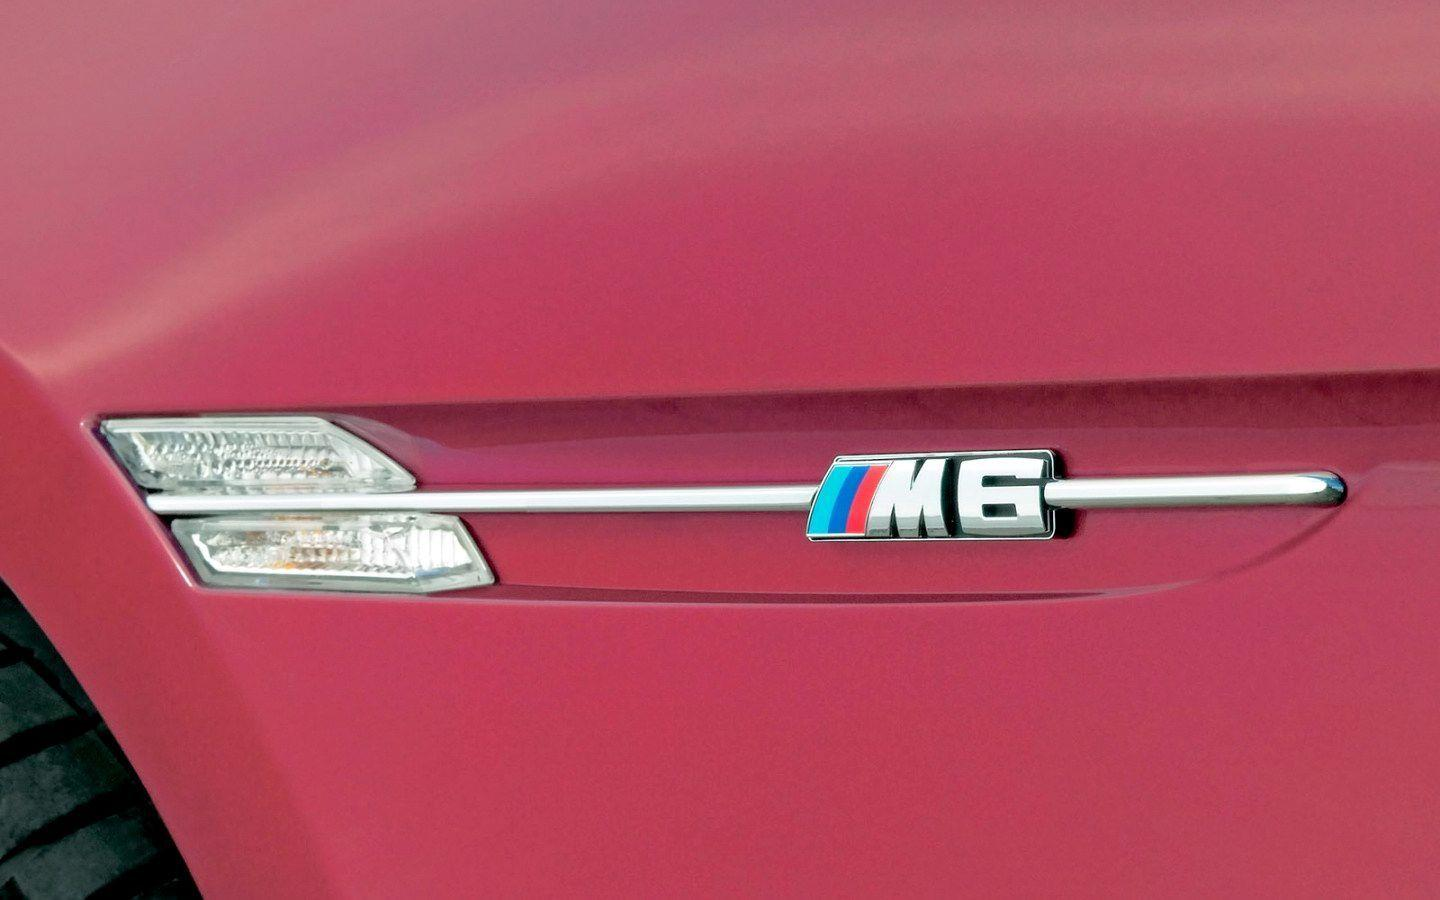 BMW M6 Logo Wallpaper - 1440x900